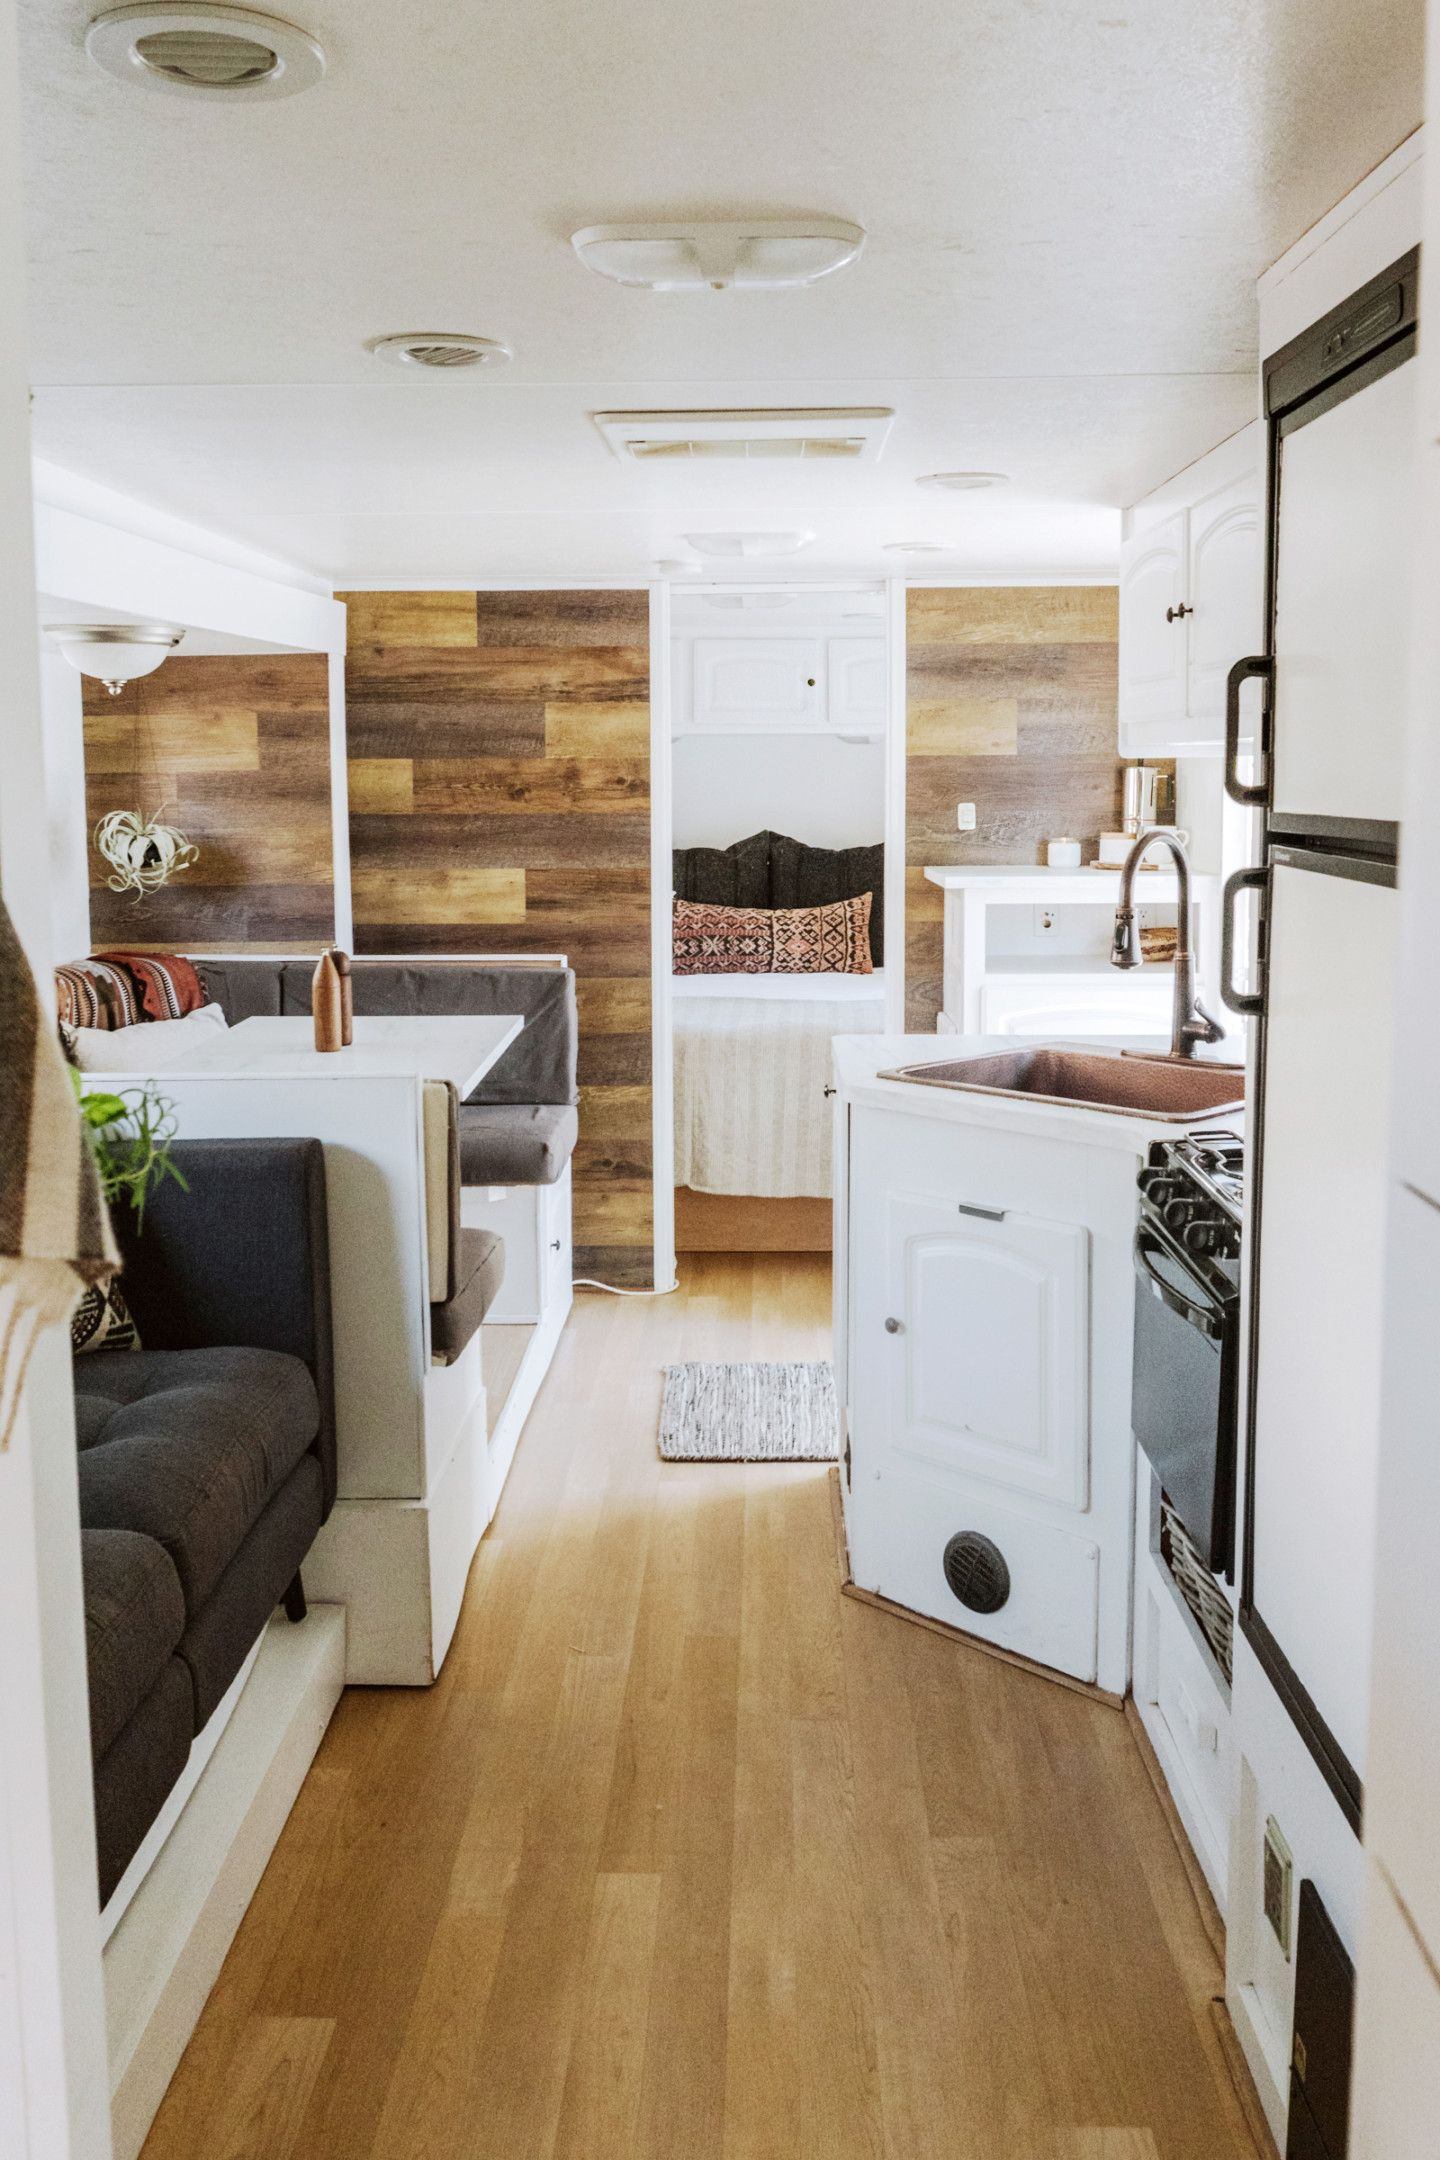 Renovated Camper Trailer Takes Designer Home Goods On A Road Trip